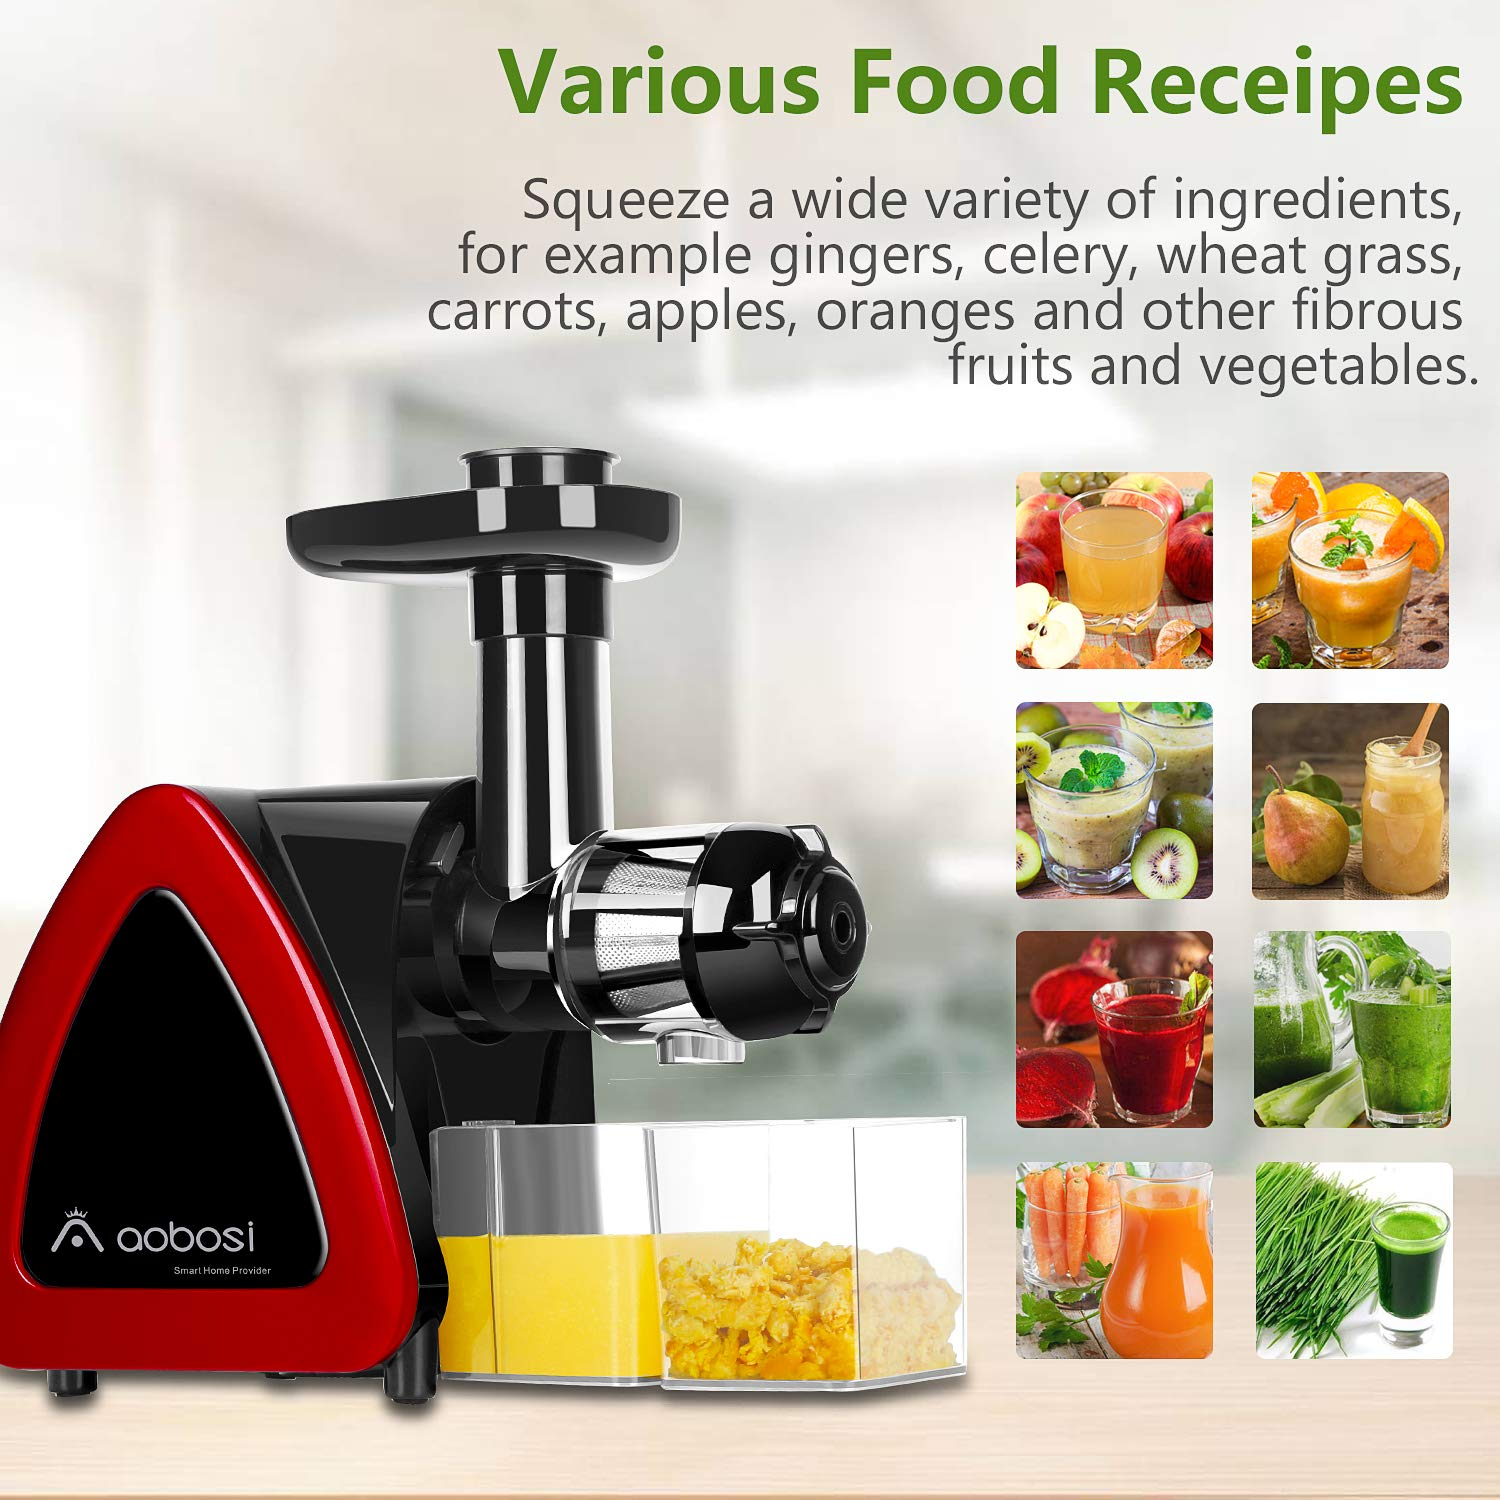 Aobosi Slow Masticating juicer Extractor, Cold Press Juicer Machine, Quiet Motor, Reverse Function, High Nutrient Fruit and Vegetable Juice with Juice Jug & Brush for Cleaning by AAOBOSI (Image #4)